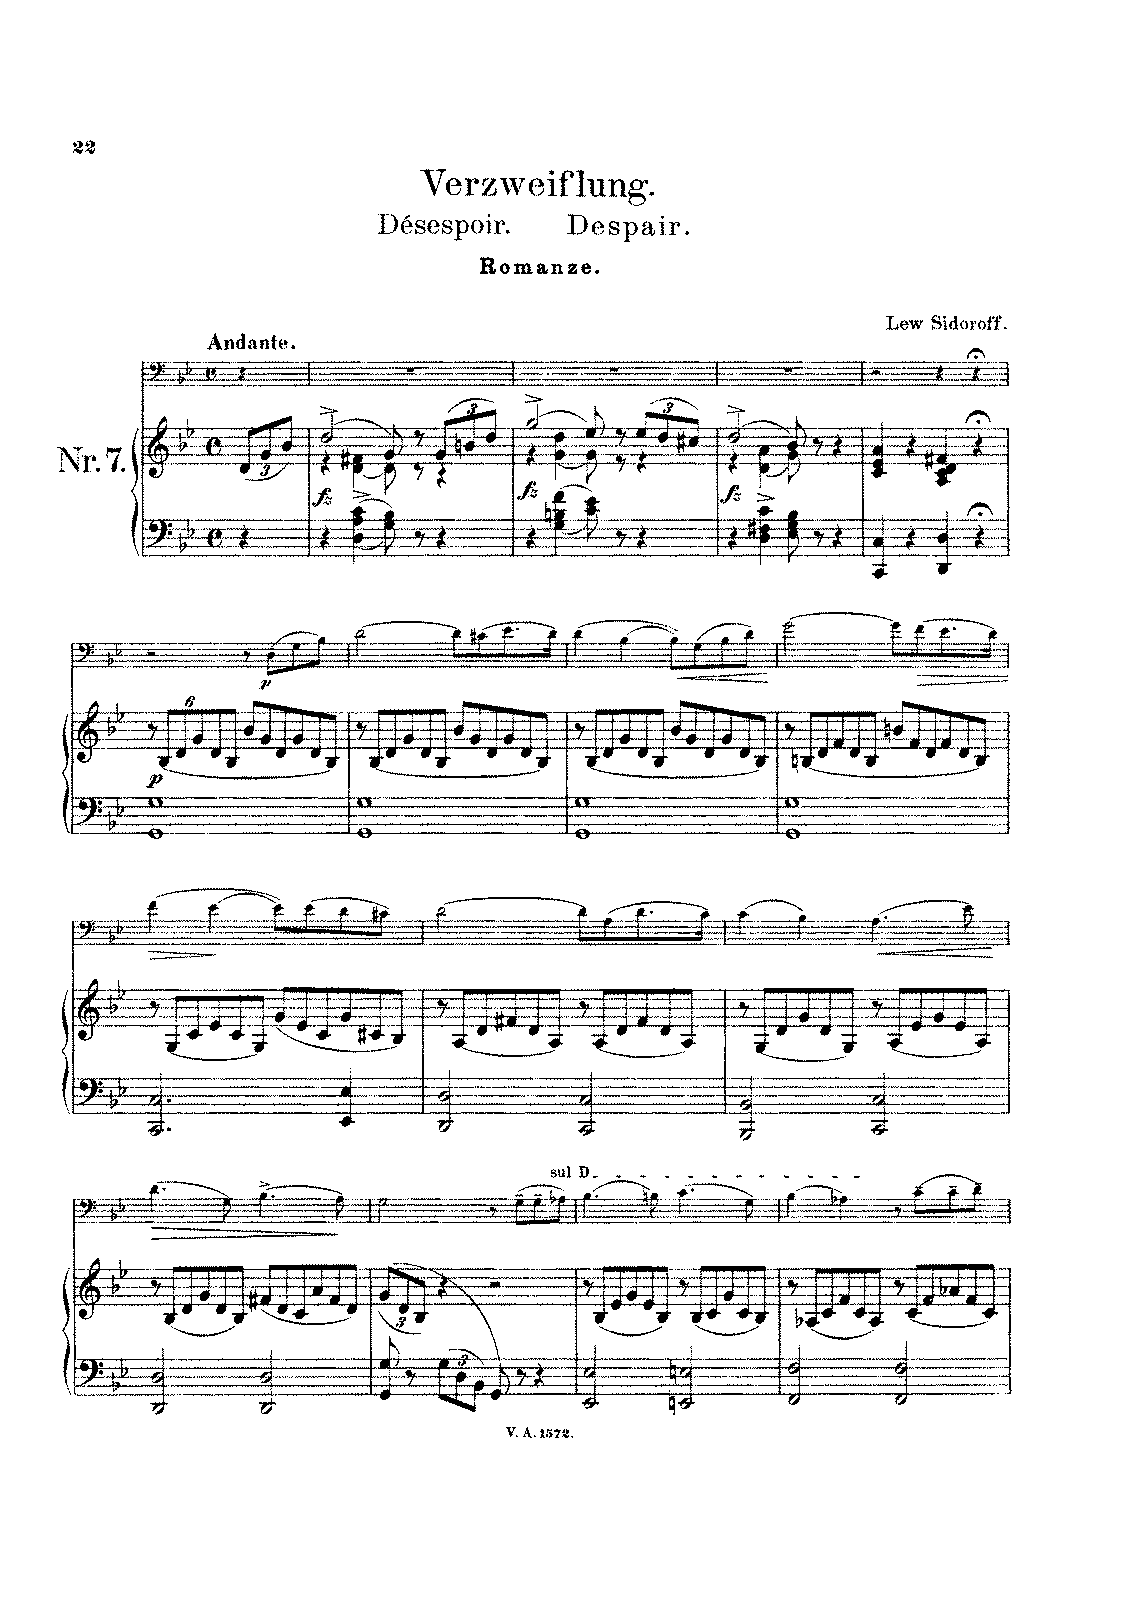 PMLP133598-Sidoroff - Despair Romanze (Salter) for Cello and Piano score.pdf